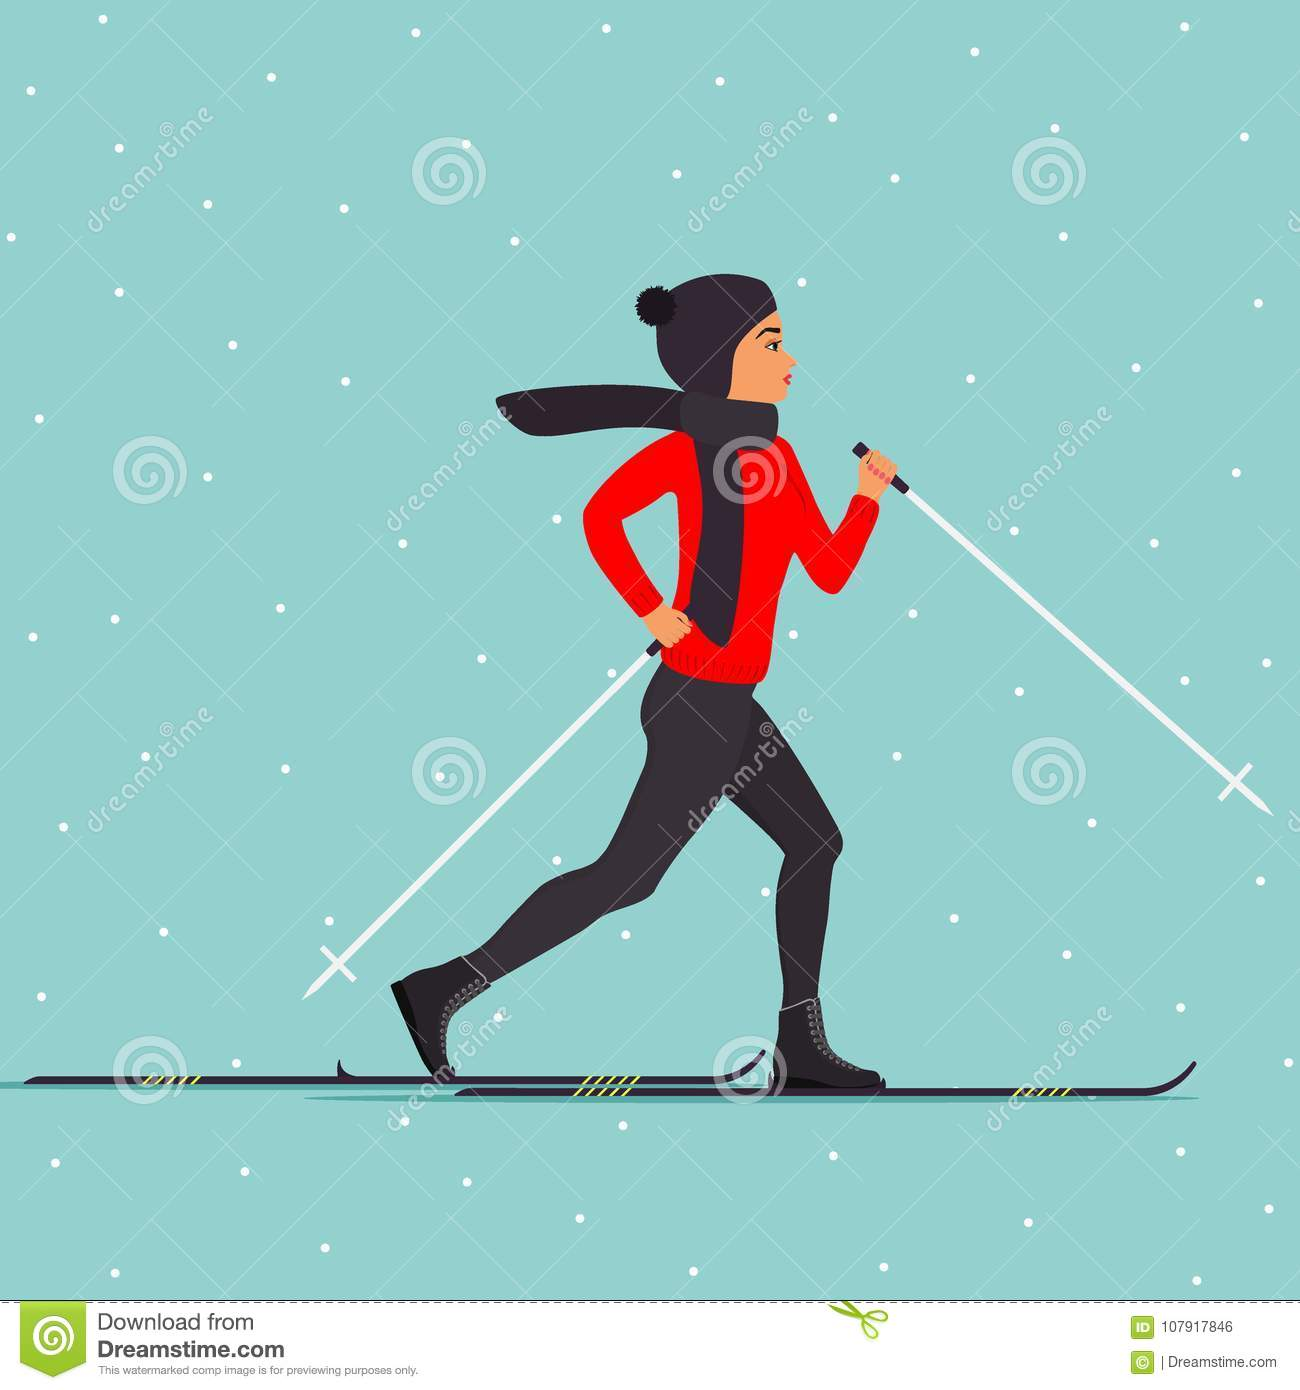 ee6eebe11d Vector illustration in flat style. Royalty-Free Illustration. Woman skier  in motion. Cross country skiing woman. Young woman in winter clothes on